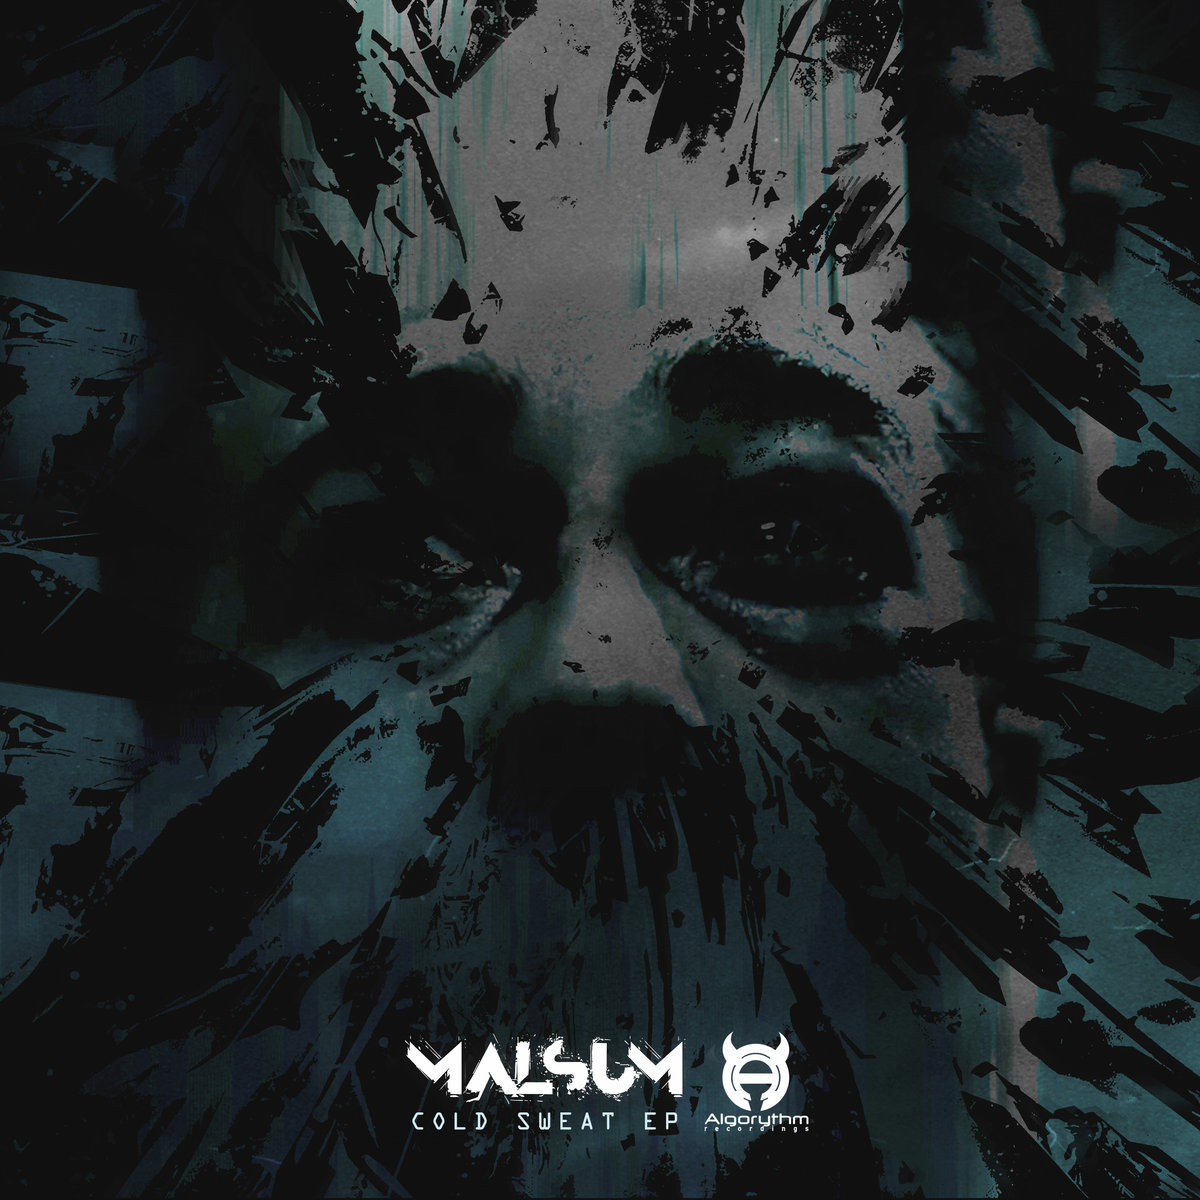 malsum-cold-sweat-ep